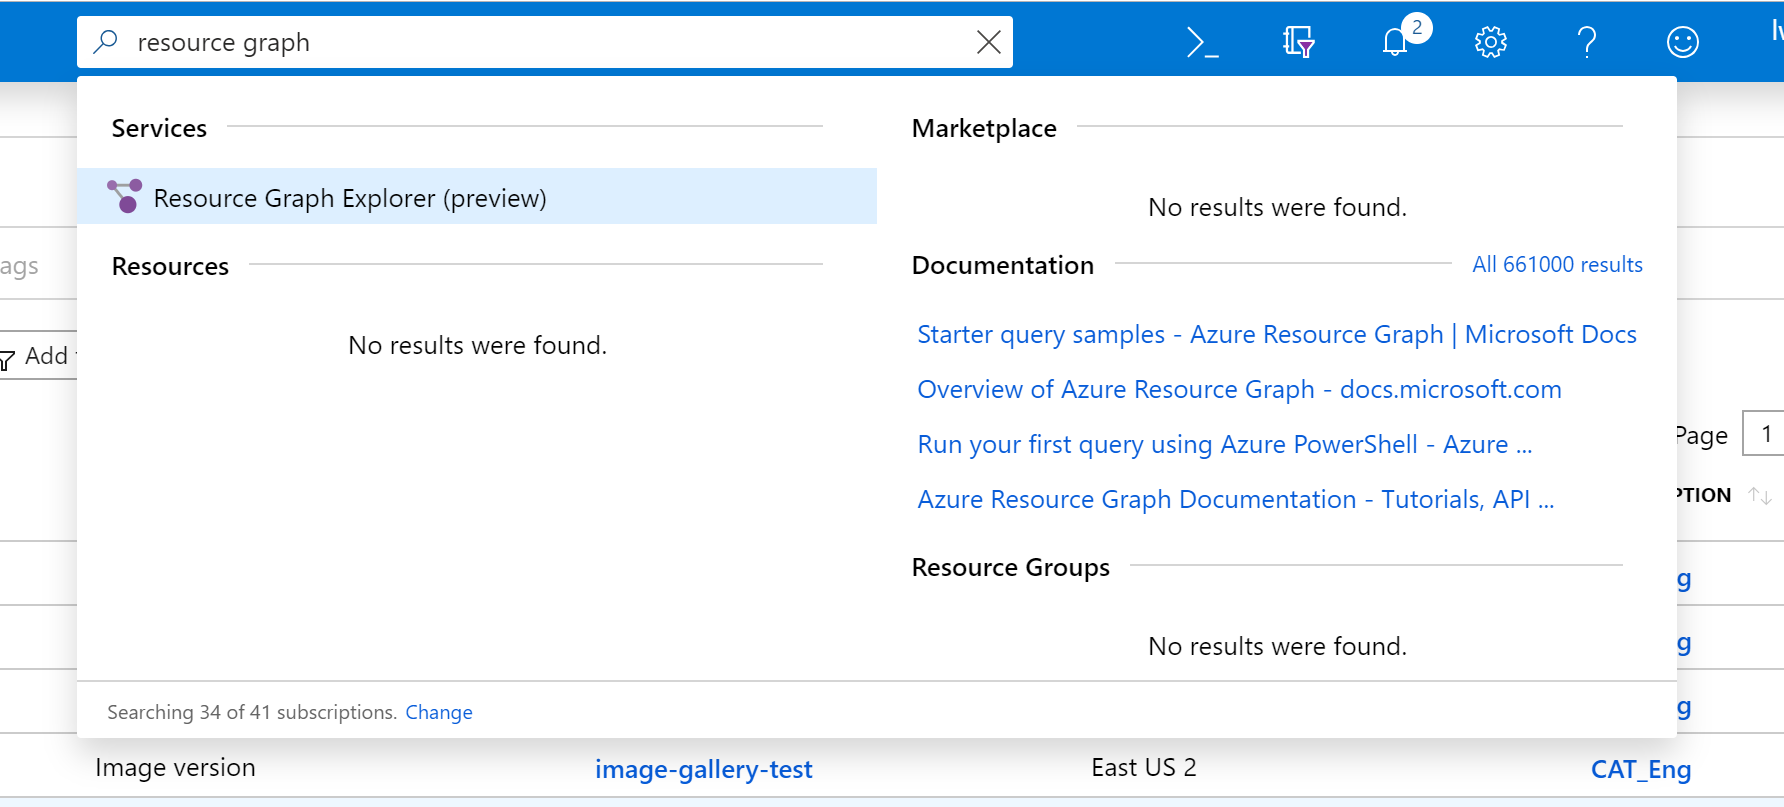 Finding Resource Graph Explorer (preview)